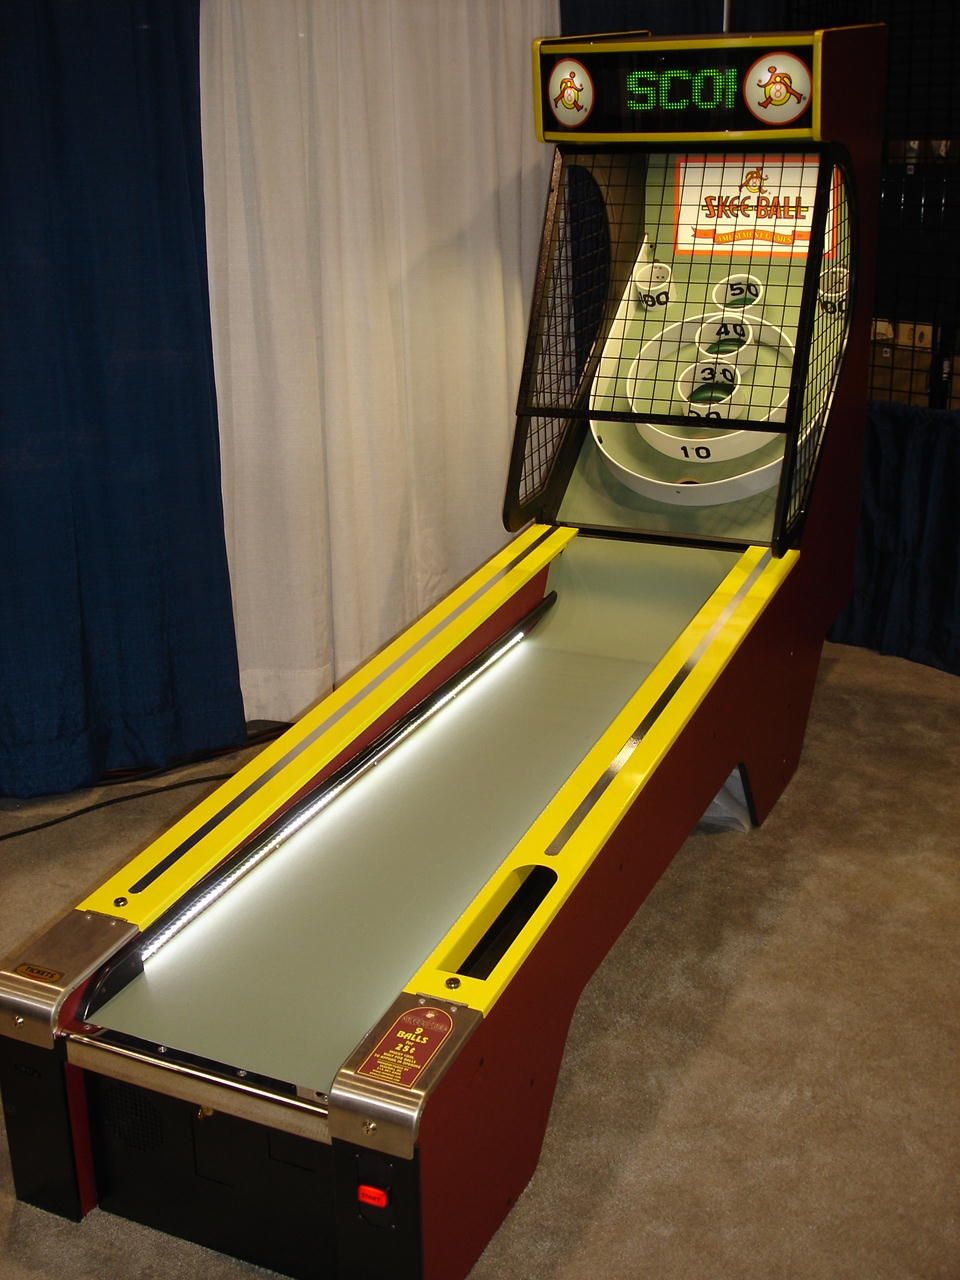 Skeeball in the entertainment/game room. Yeah. That'll